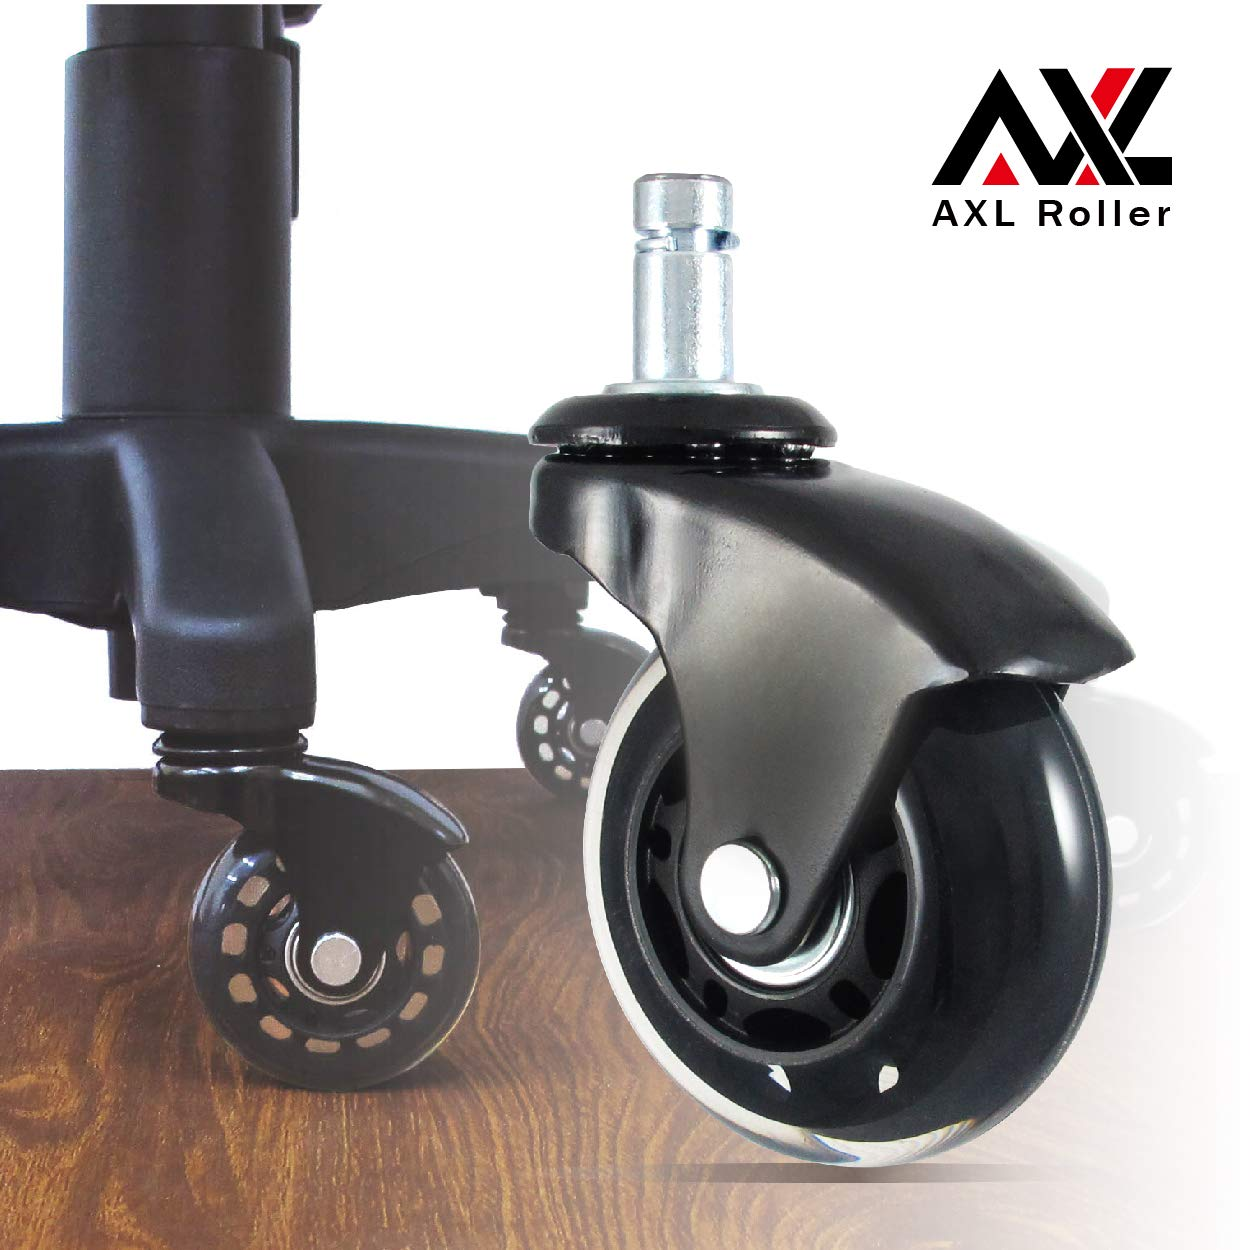 AXL 2.5 Inch Office Chair Caster Wheels Replacement, PU Style Caster, Desk Chair Floor Protector, No Noise, Heavy Duty Casters for Hardwood Floors (Black/Clear), Set of 5